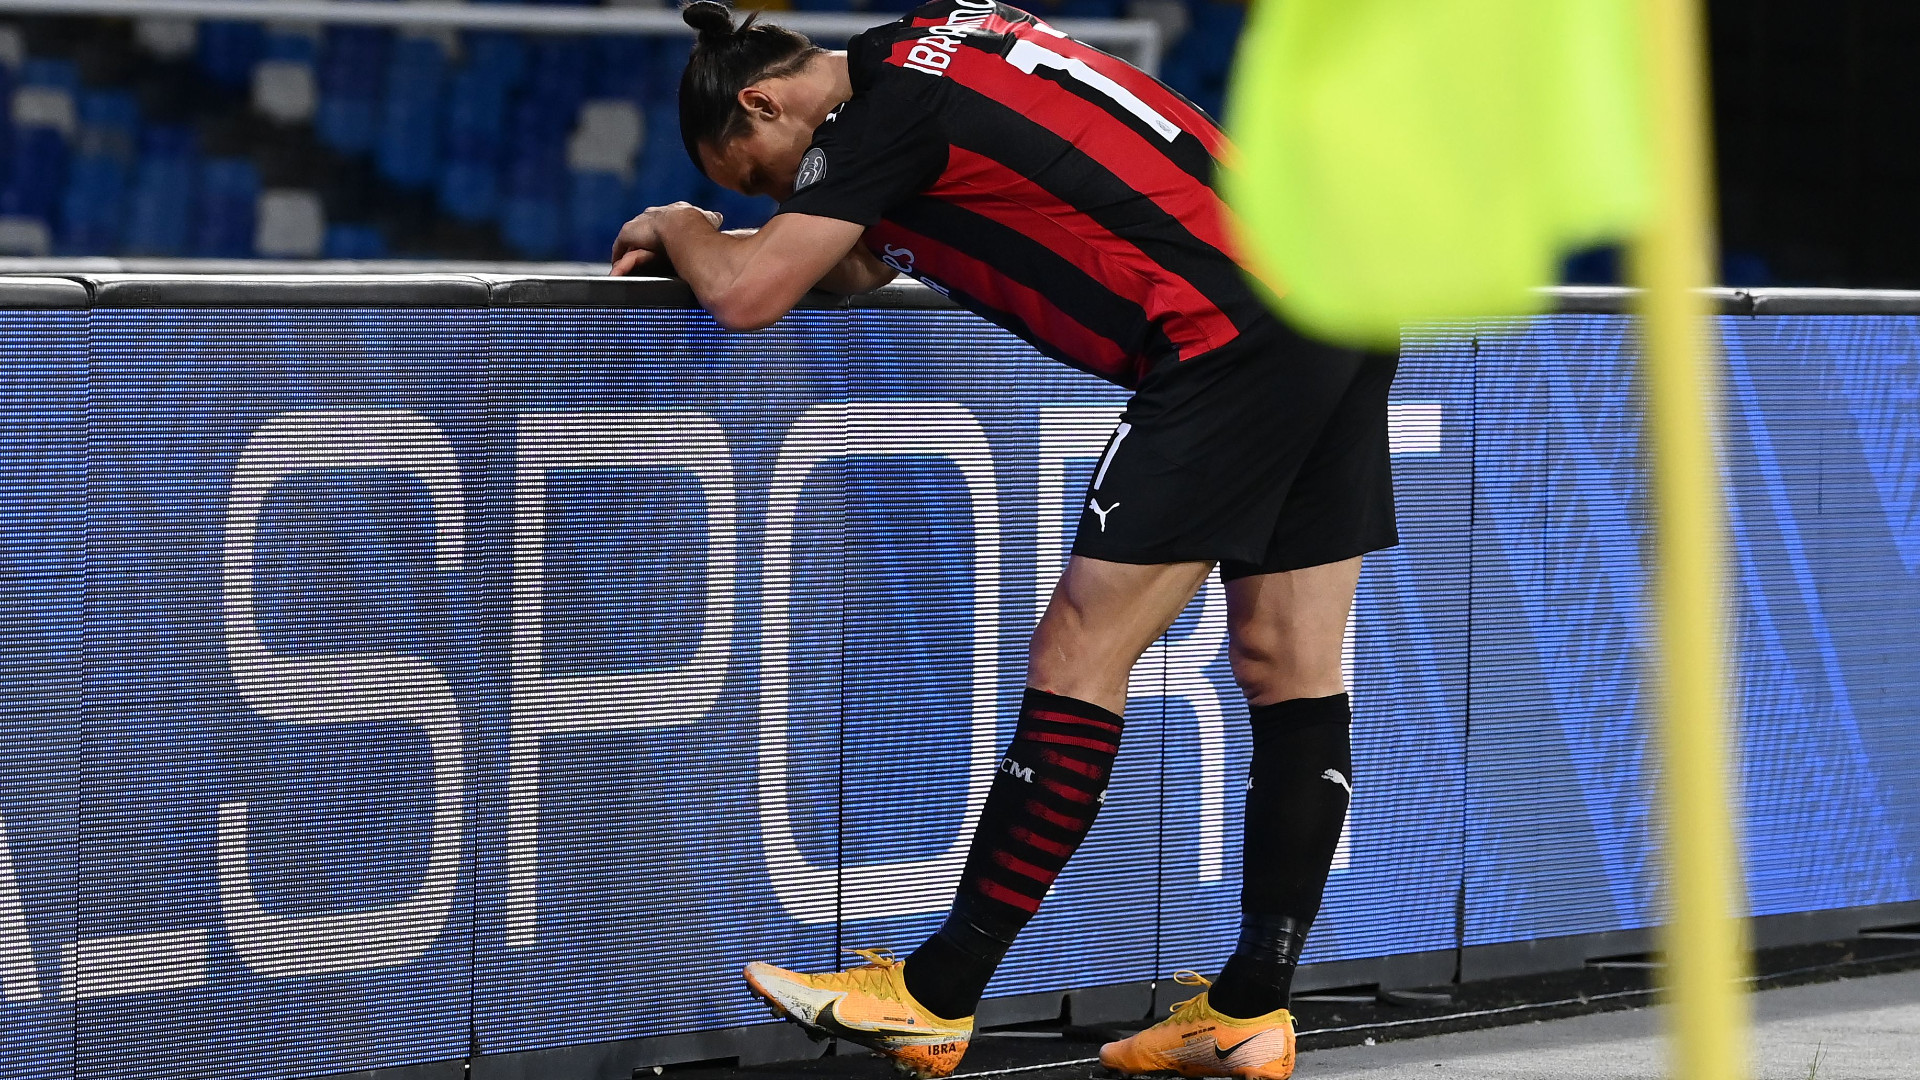 Infortunio Ibrahimovic, come sta l'attaccante del Milan